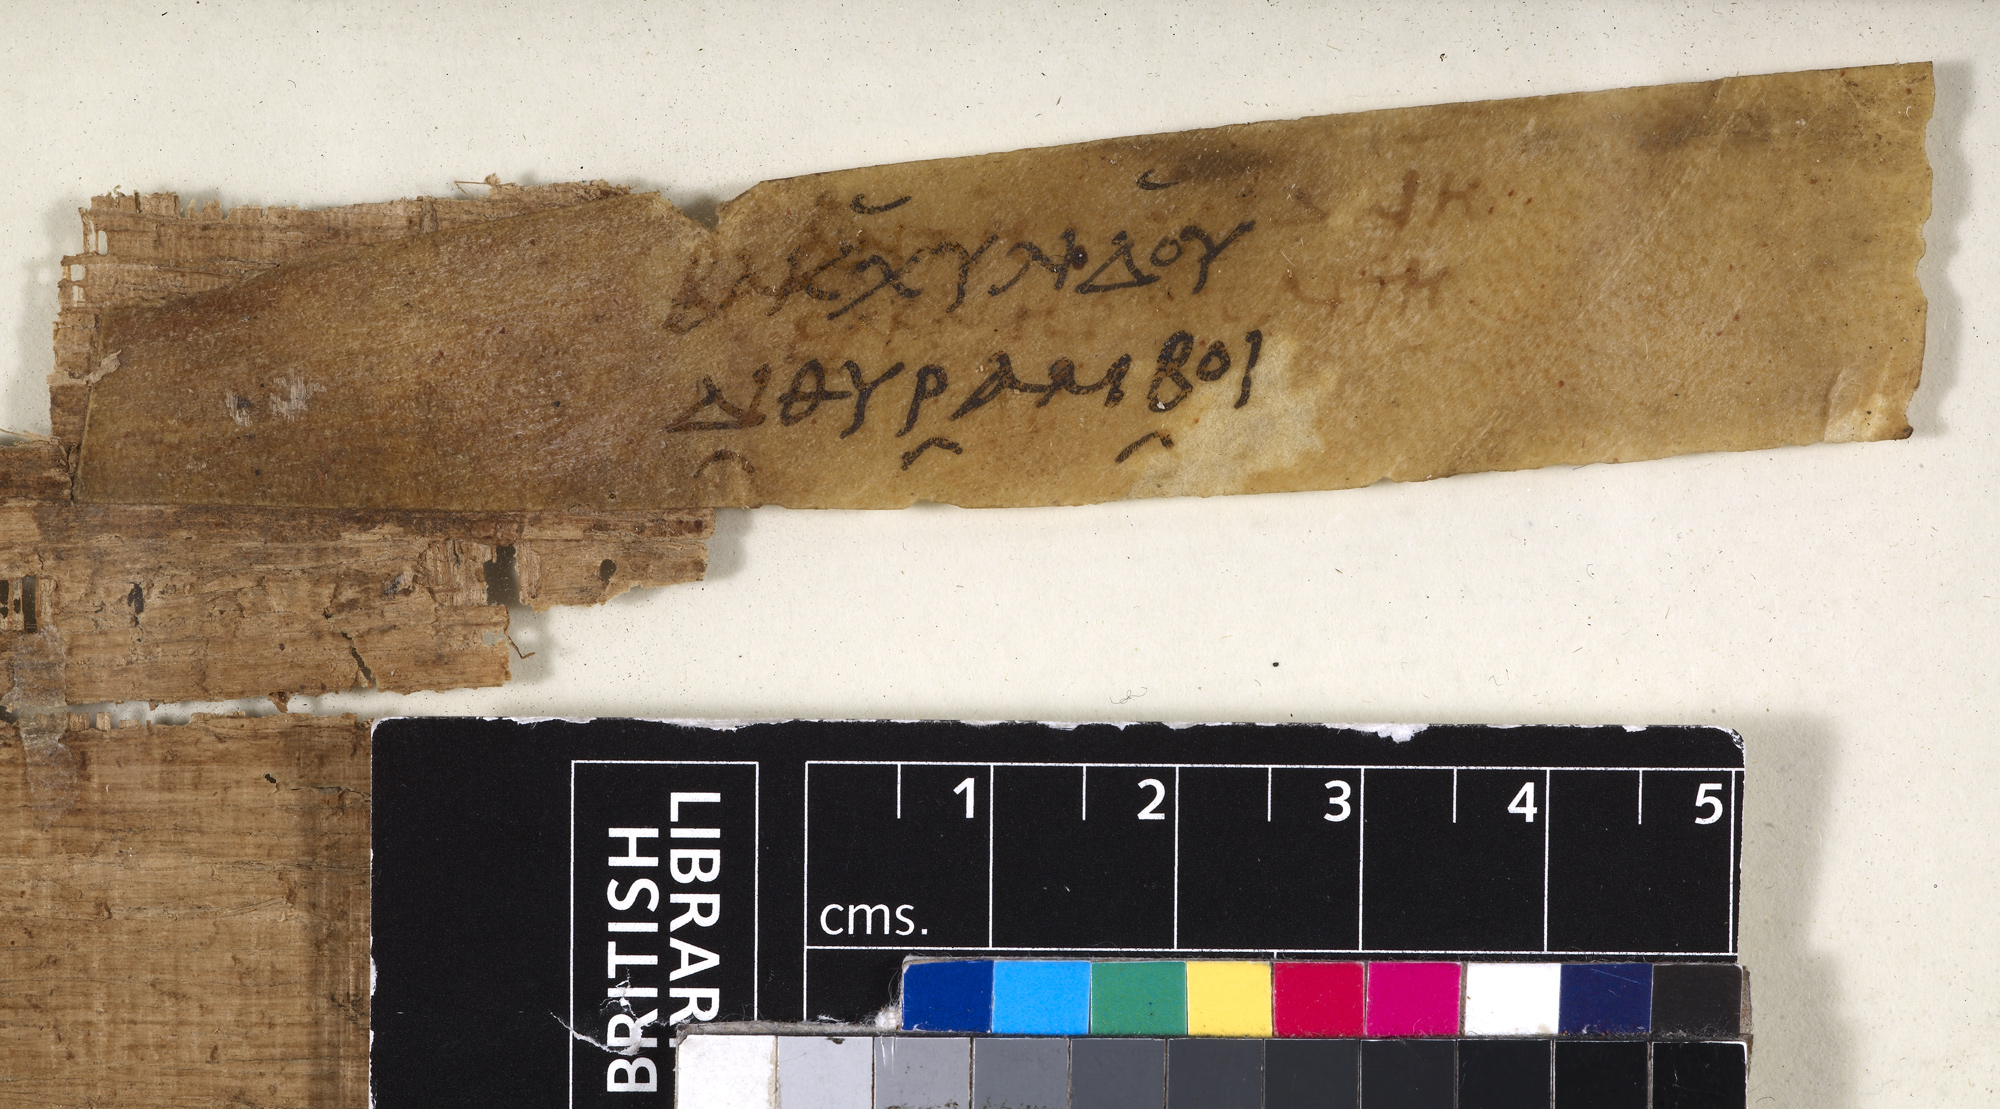 Fragment of Bacchylides, with attached sillybos (Papyrus 2056 recto)